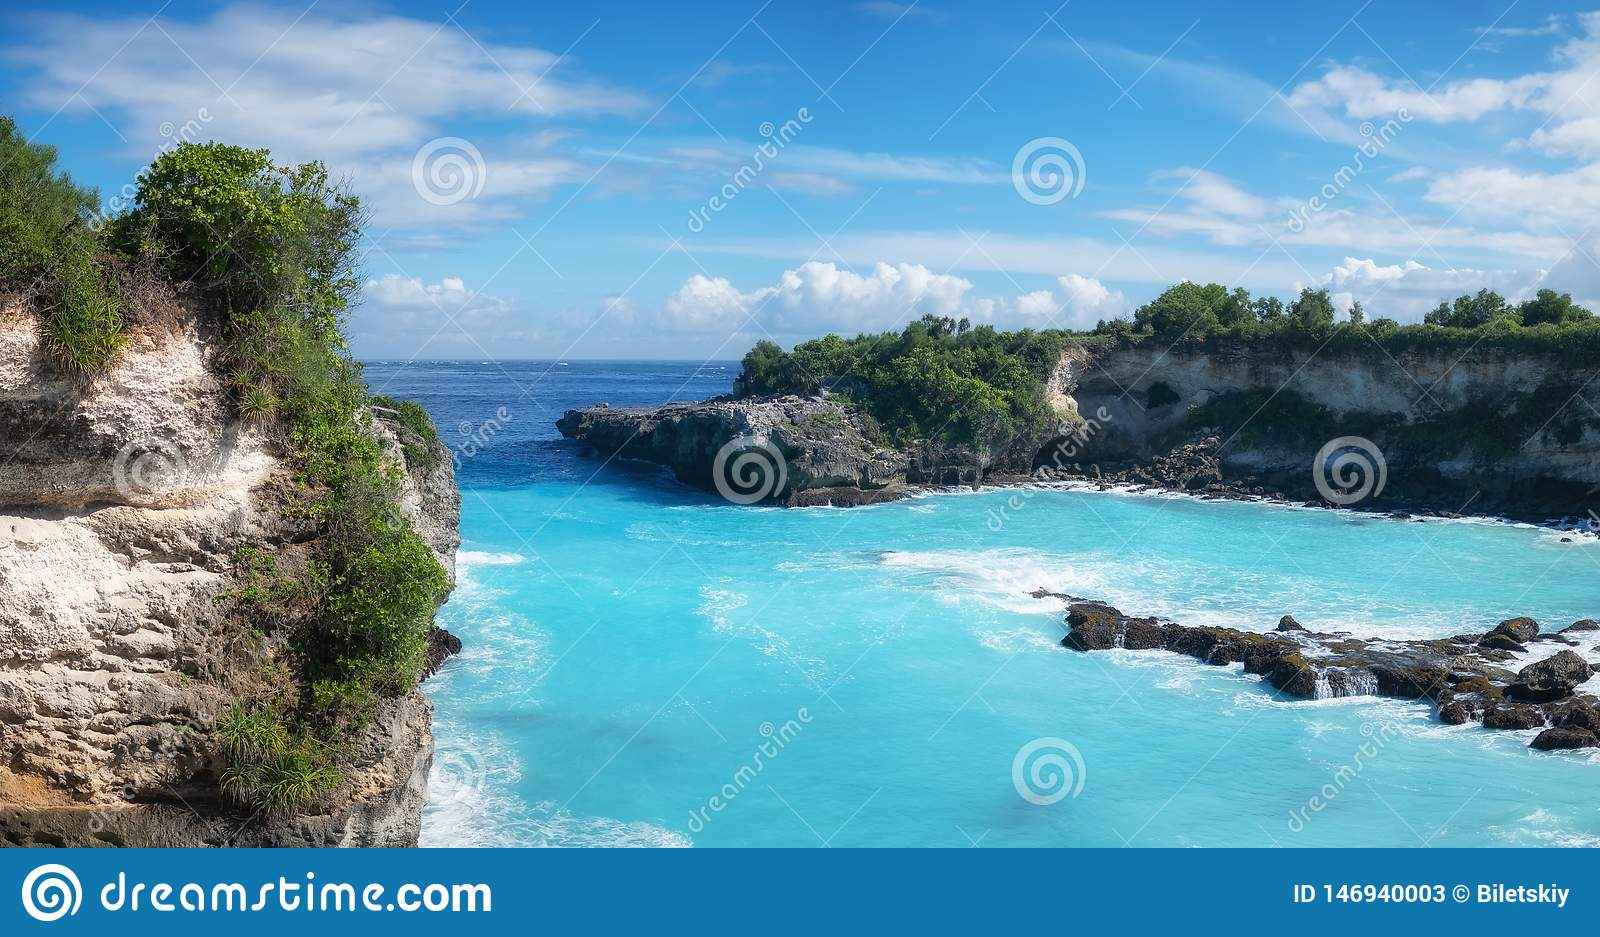 View on the blue lagune. Turquoise water background. Summer seascape from air. Rocks and azure sea water. Summer adventure.